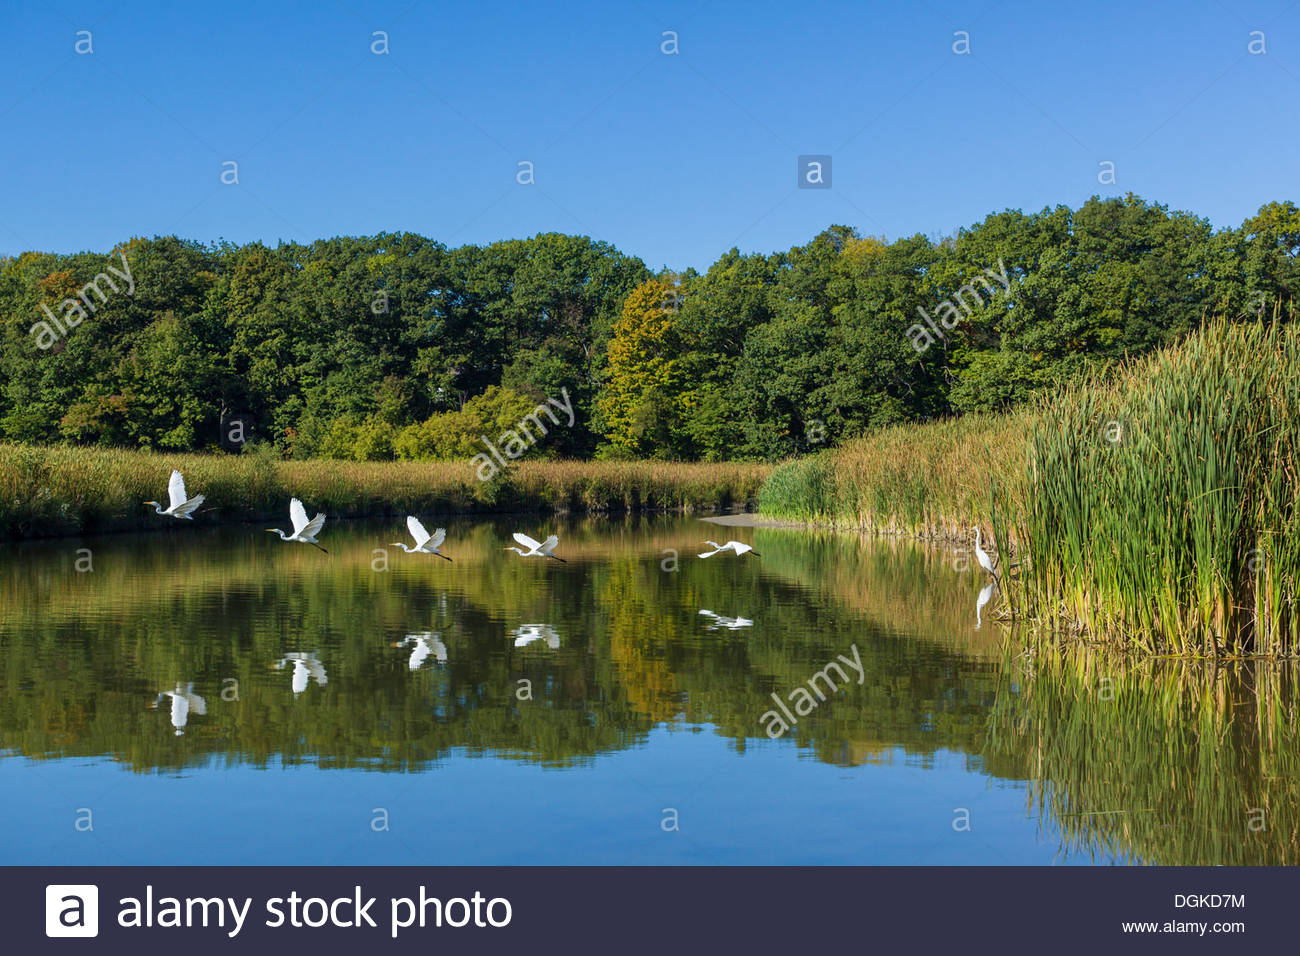 combination-of-6-photos-of-great-egret-t